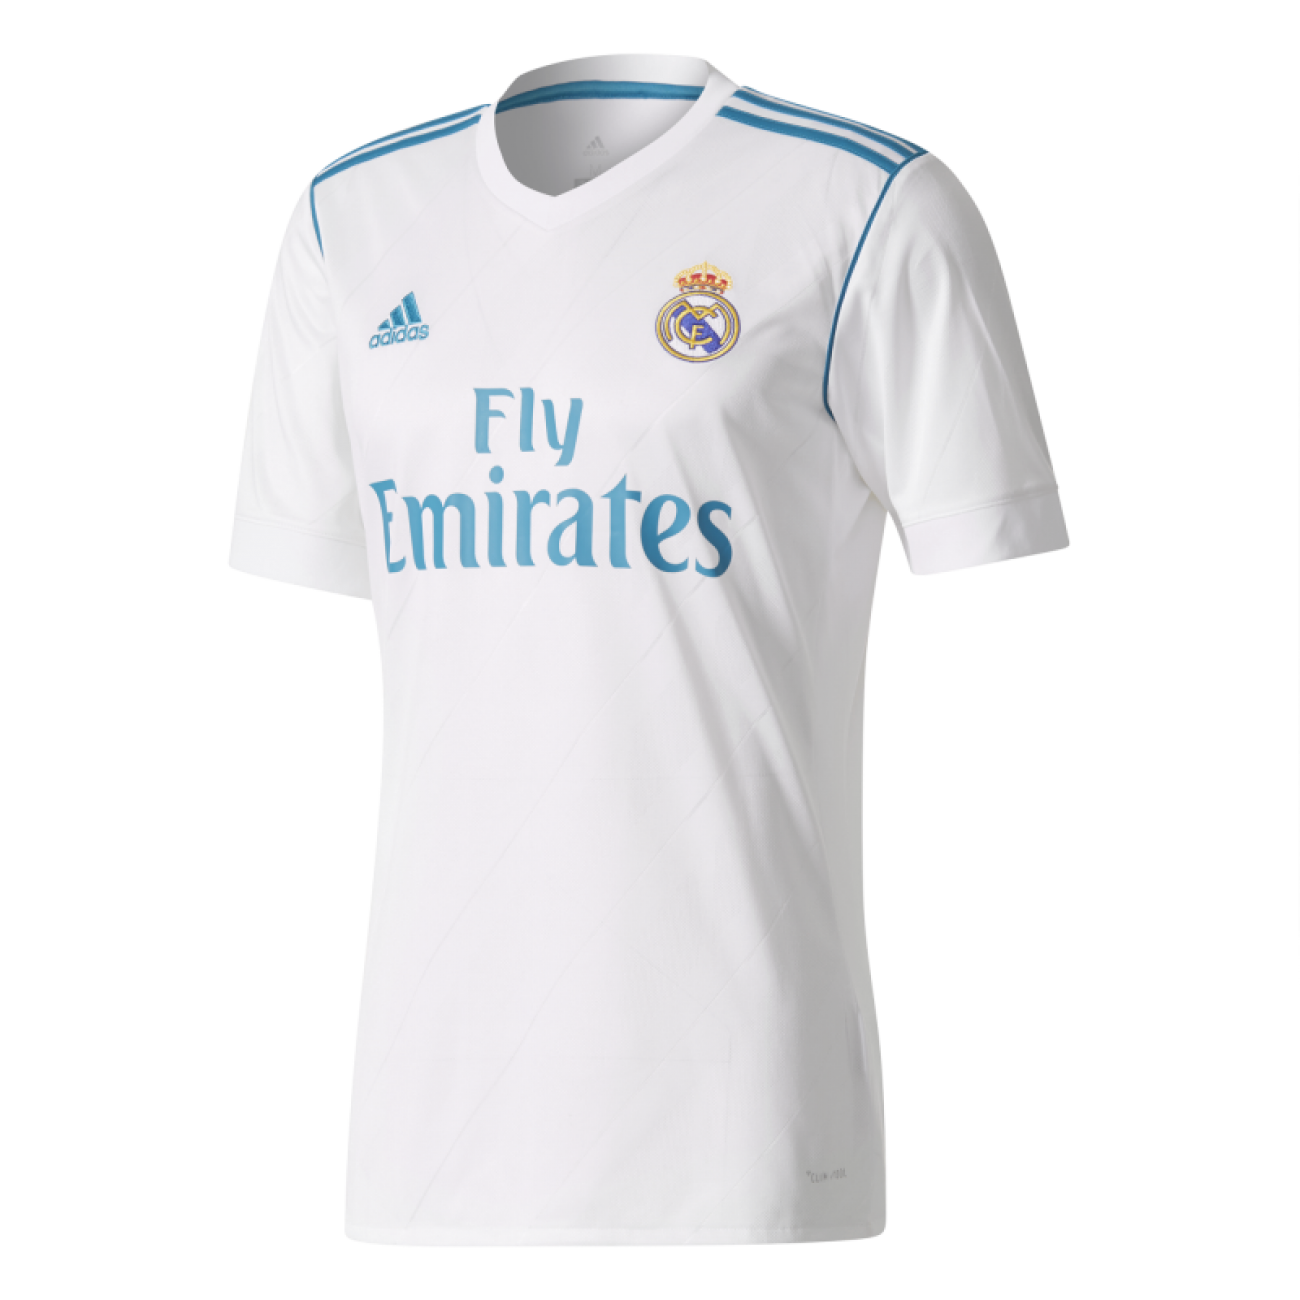 288b005cd9ec9 Camiseta Real Madrid 2017-2018